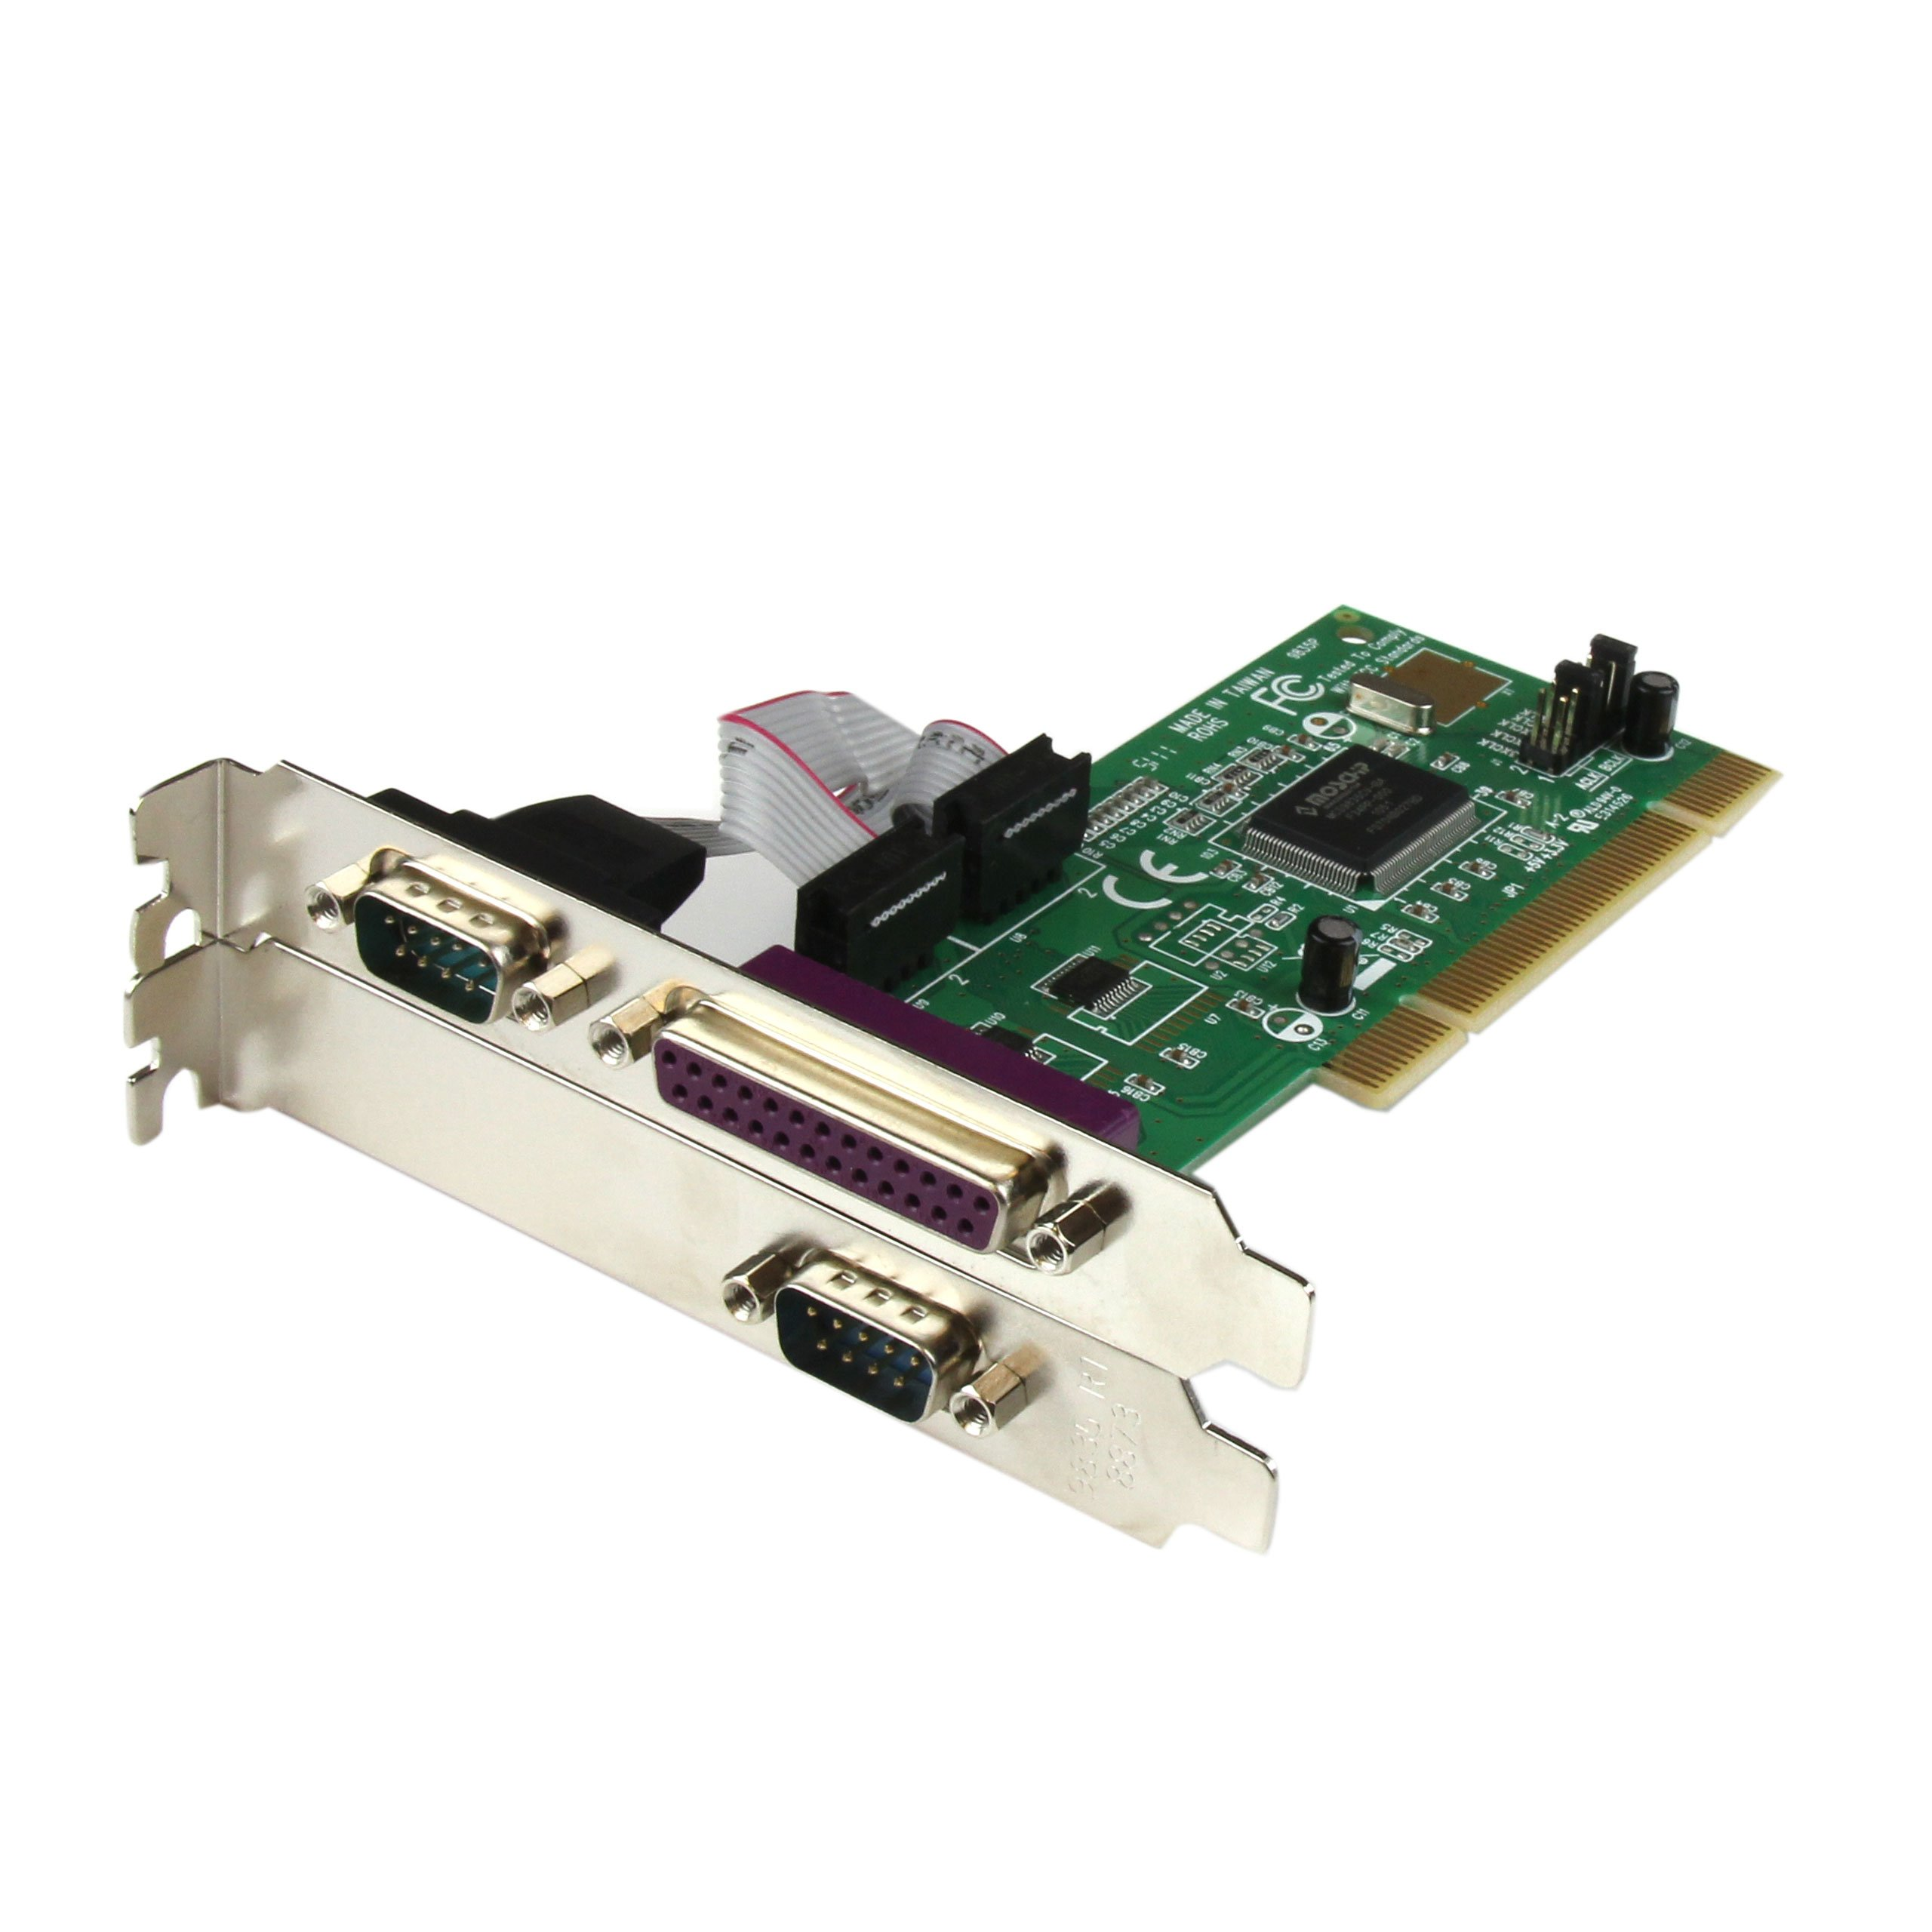 StarTech.com 2S1P PCI Serial Parallel Combo Card with 16550 UART - IEEE 1284 Card - Serial Parallel PCI - PCI Serial Adapter  (PCI2S1P) by StarTech